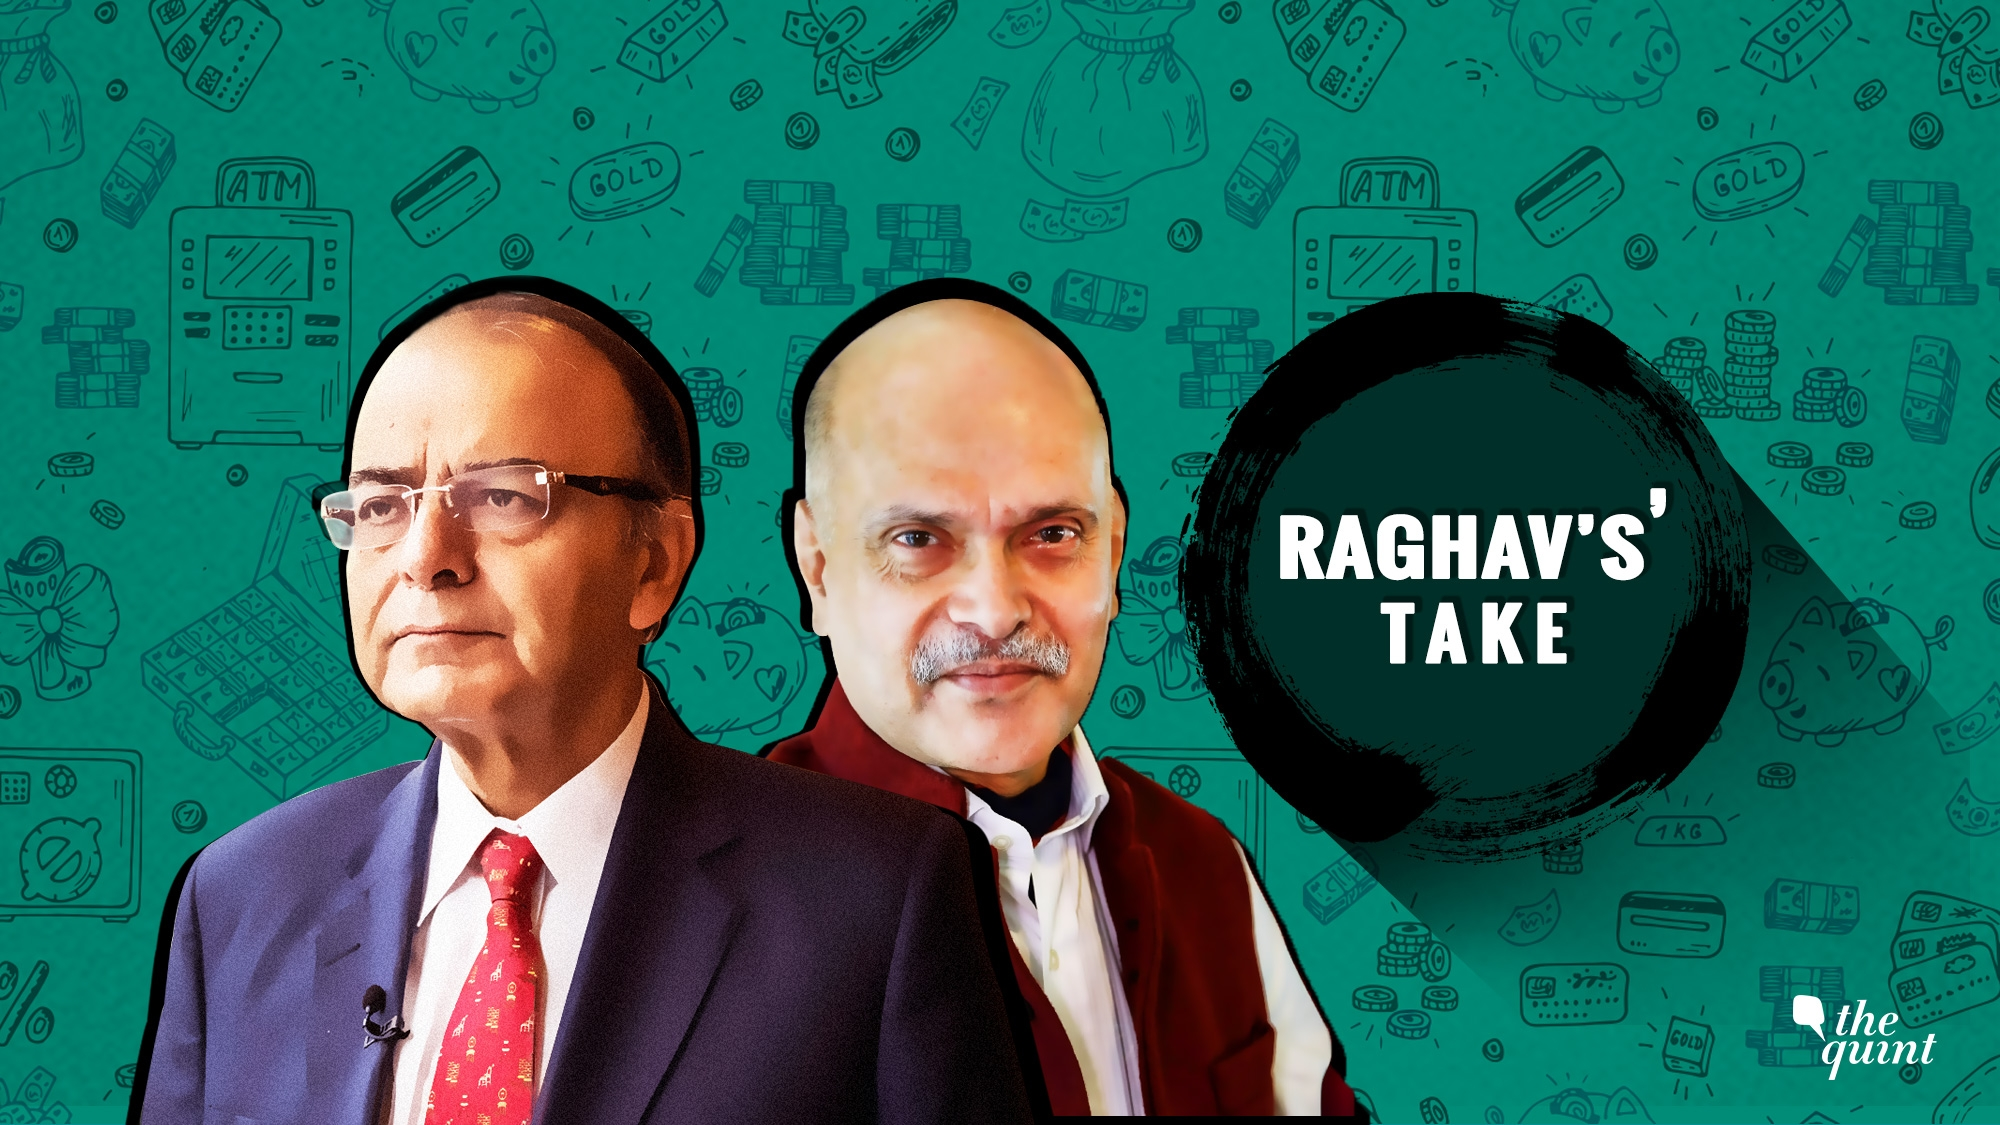 Raghav bahl superpower